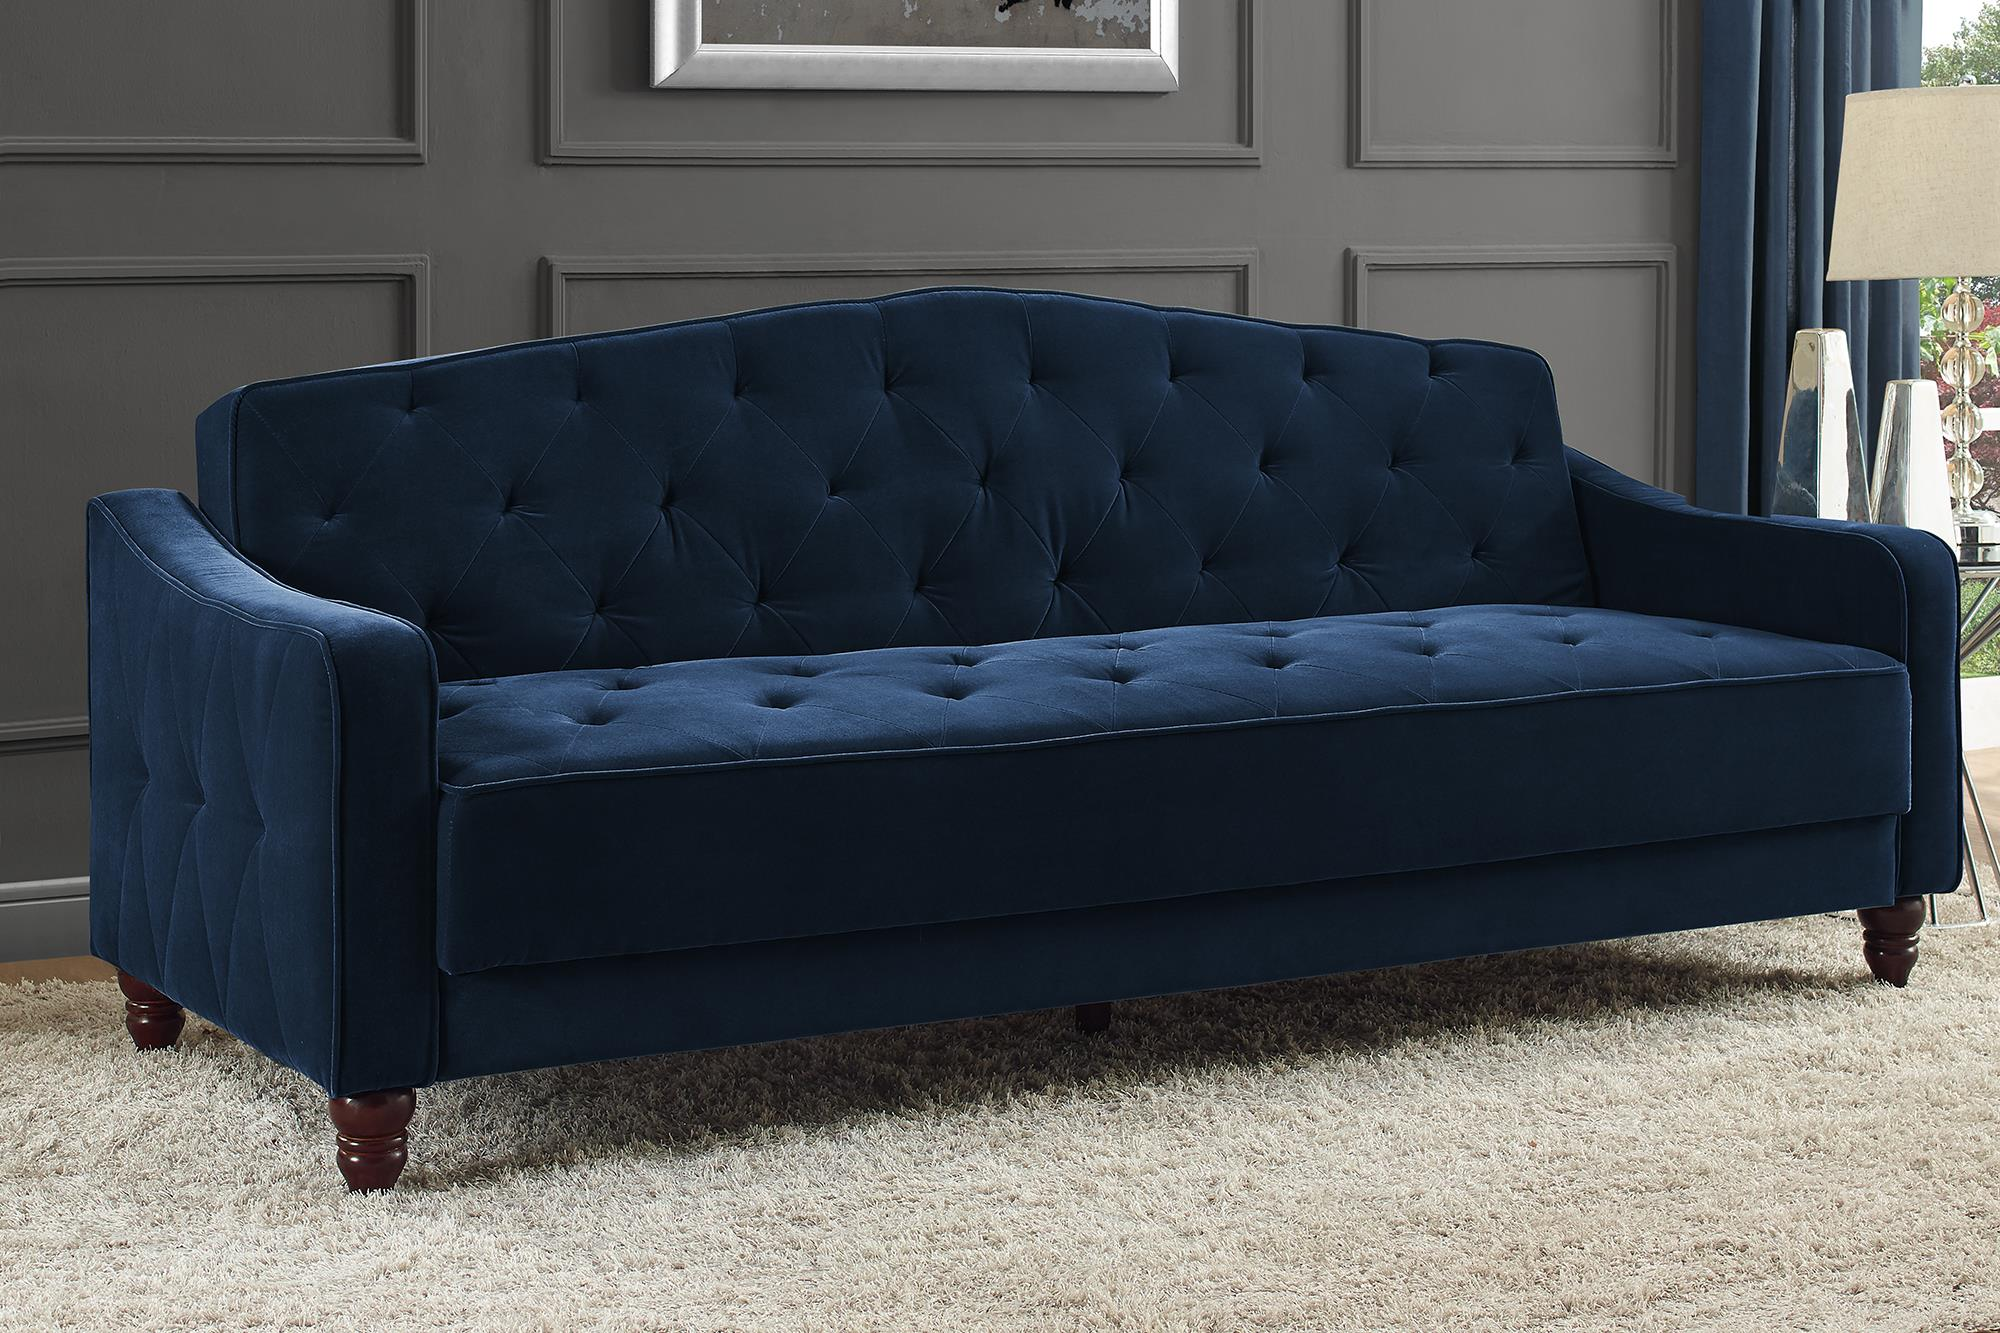 Novogratz Vintage Tufted Sofa Sleeper II, Multiple Colors Image 2 Of 15